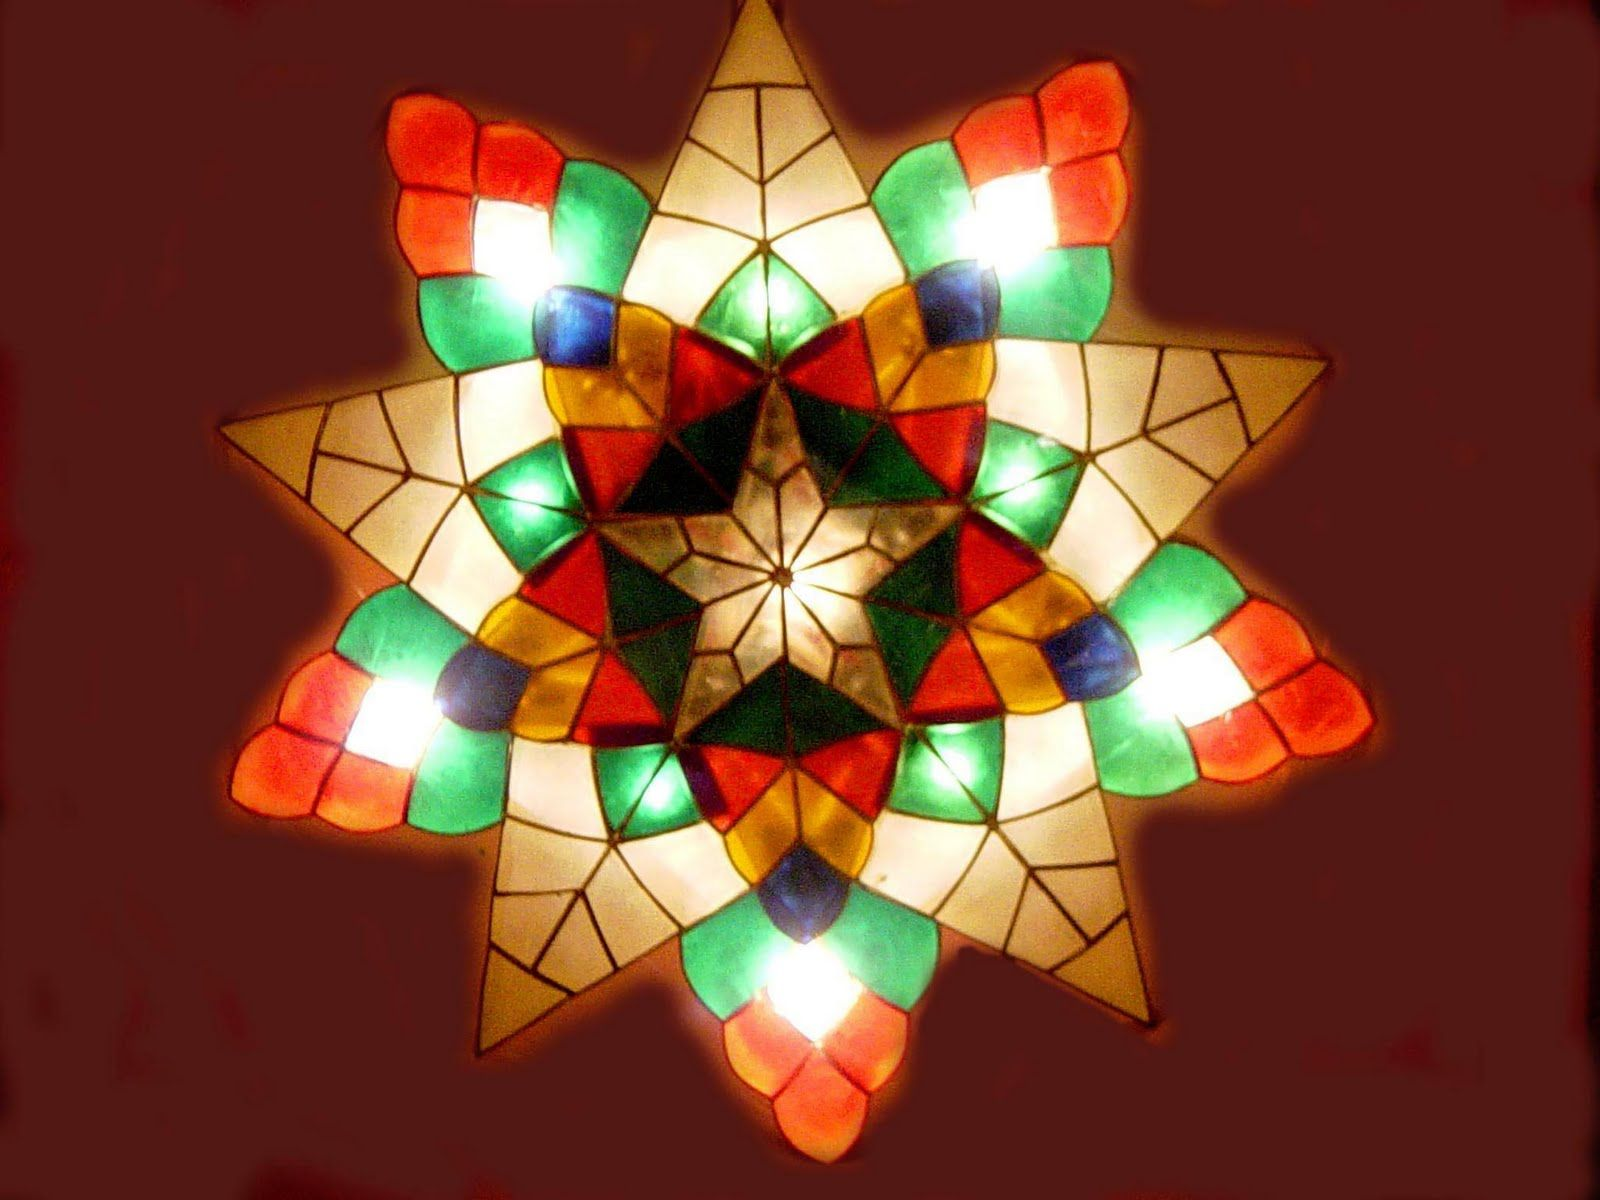 filipino parol | Recent Photos The Commons Getty Collection Galleries World  Map App ... | IT'S A FILIPINO THING! | Pinterest | Winter solstice, Big  houses ...